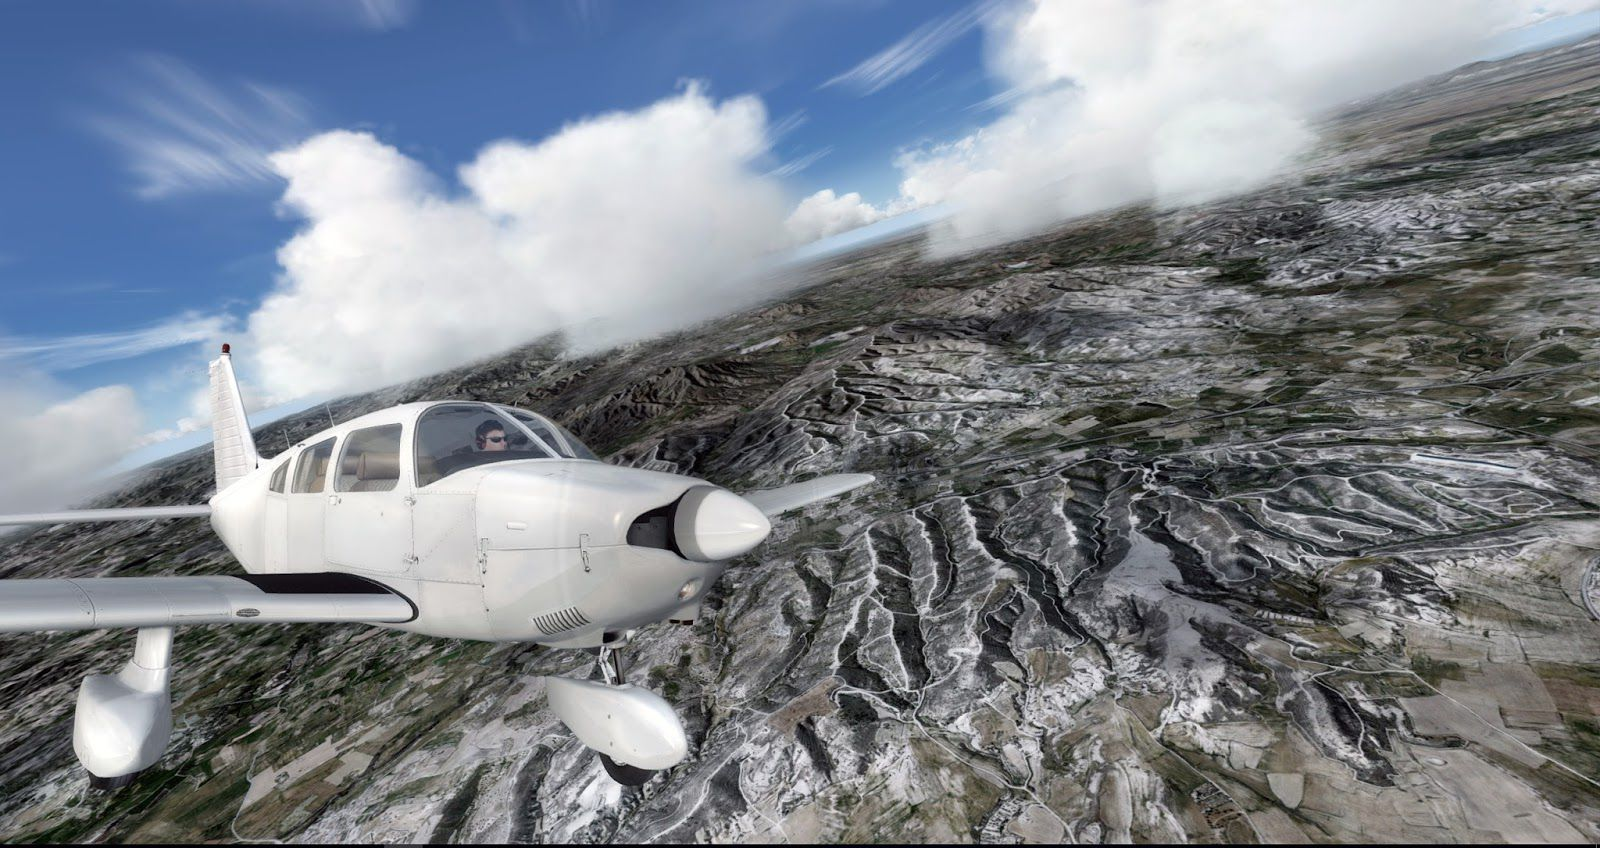 P3d how to add scenery